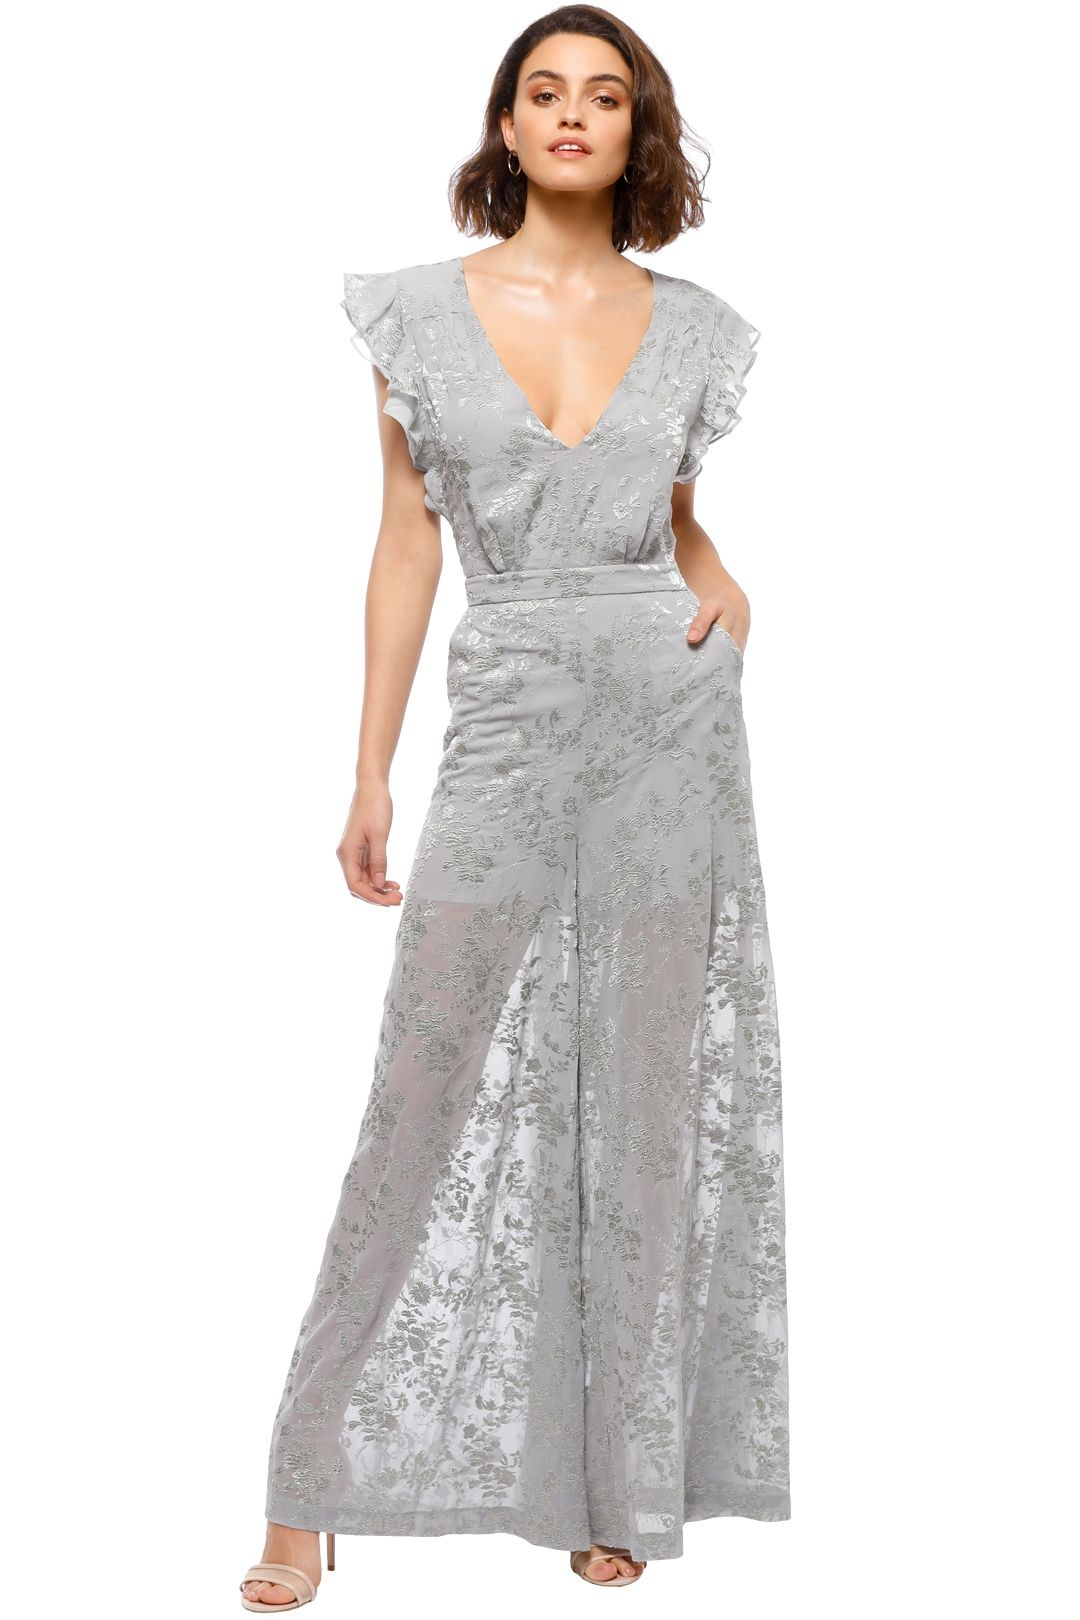 We Are Kindred - Florence Open Back Jumpsuit - Silver - Front